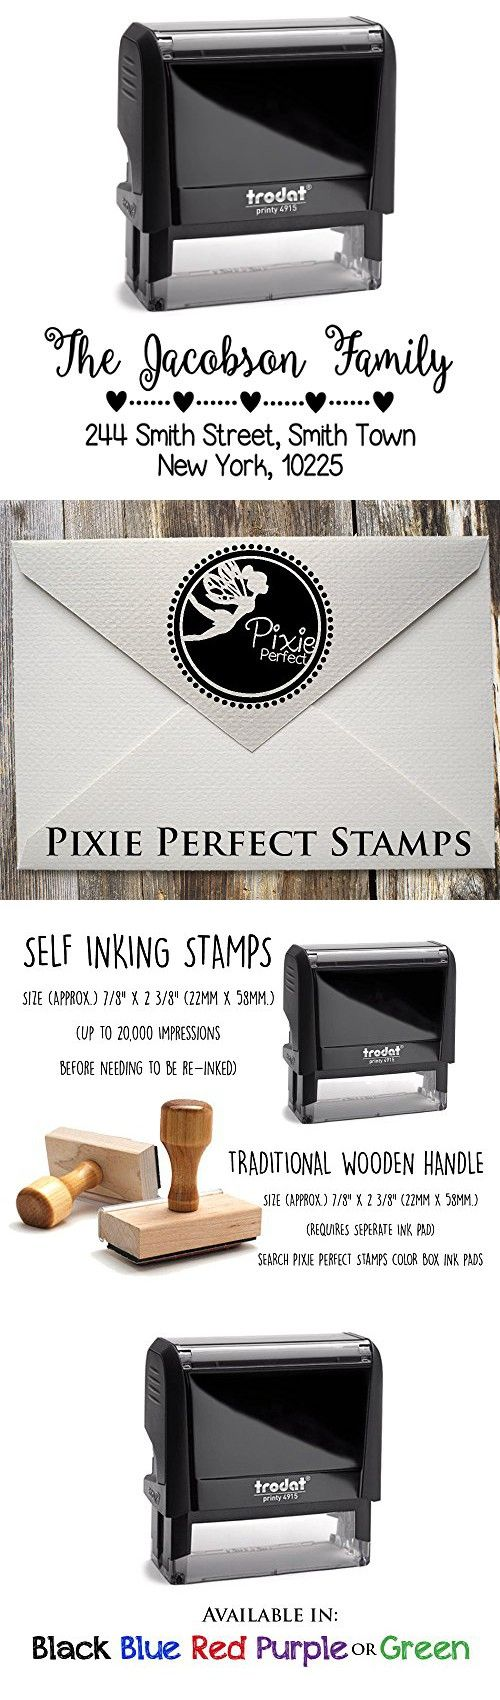 Black Ink, Hearts with Dots Divider, Custom Self Inking Return Address Stamp Personalized, Business Office Stamps, Brilliant Gift for Engagement, Newlyweds, Family, Wedding or Housewarming